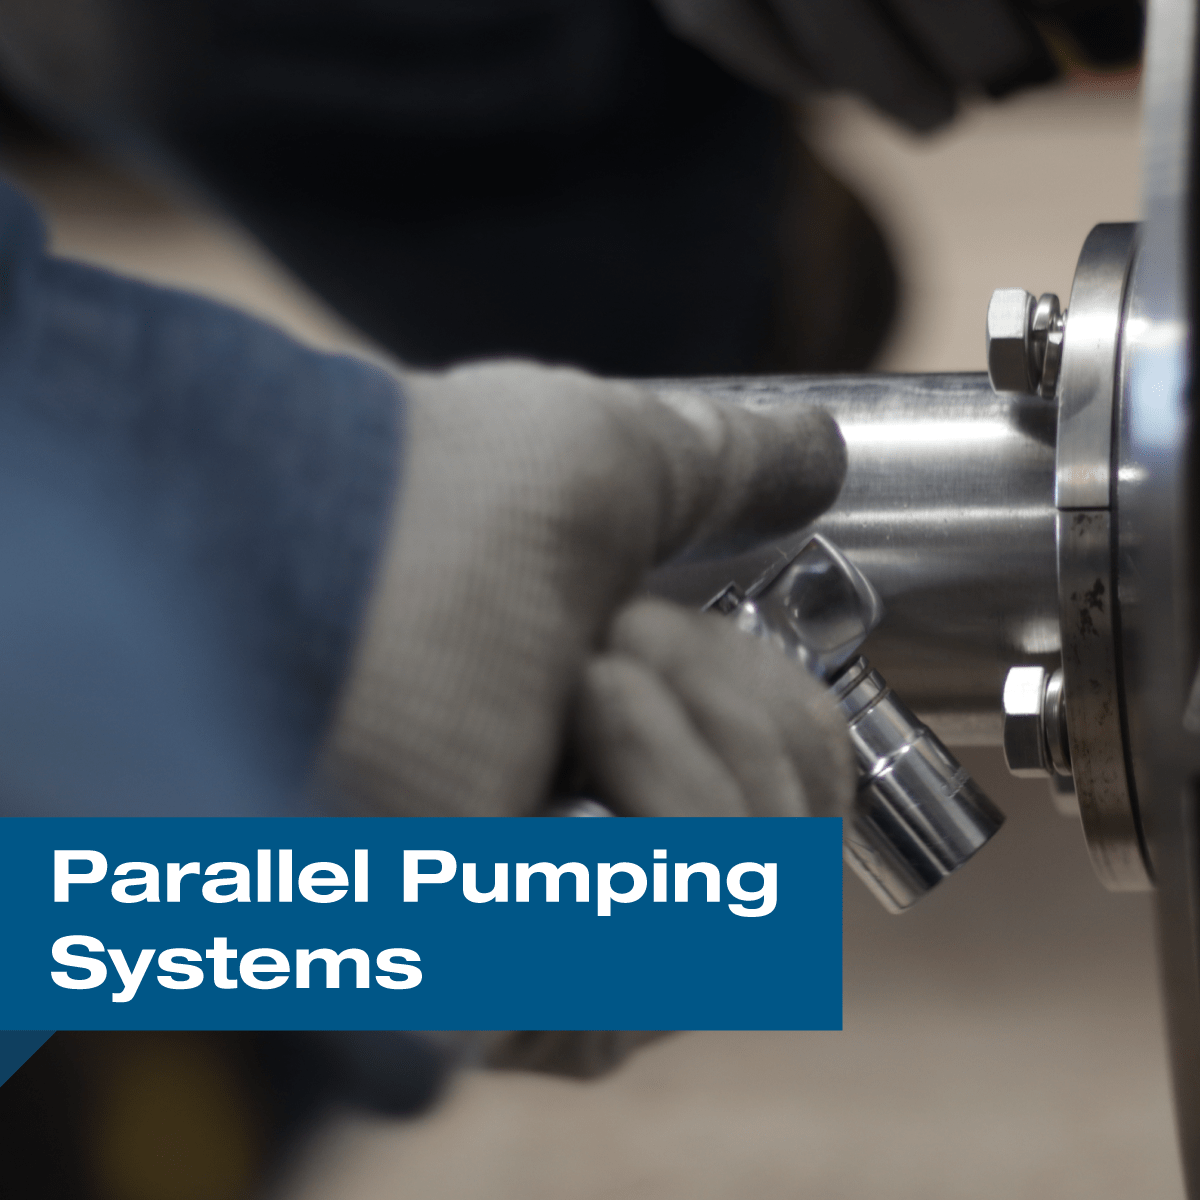 How To Optimize Parallel Pumping Systems for Reduced Energy Consumption?